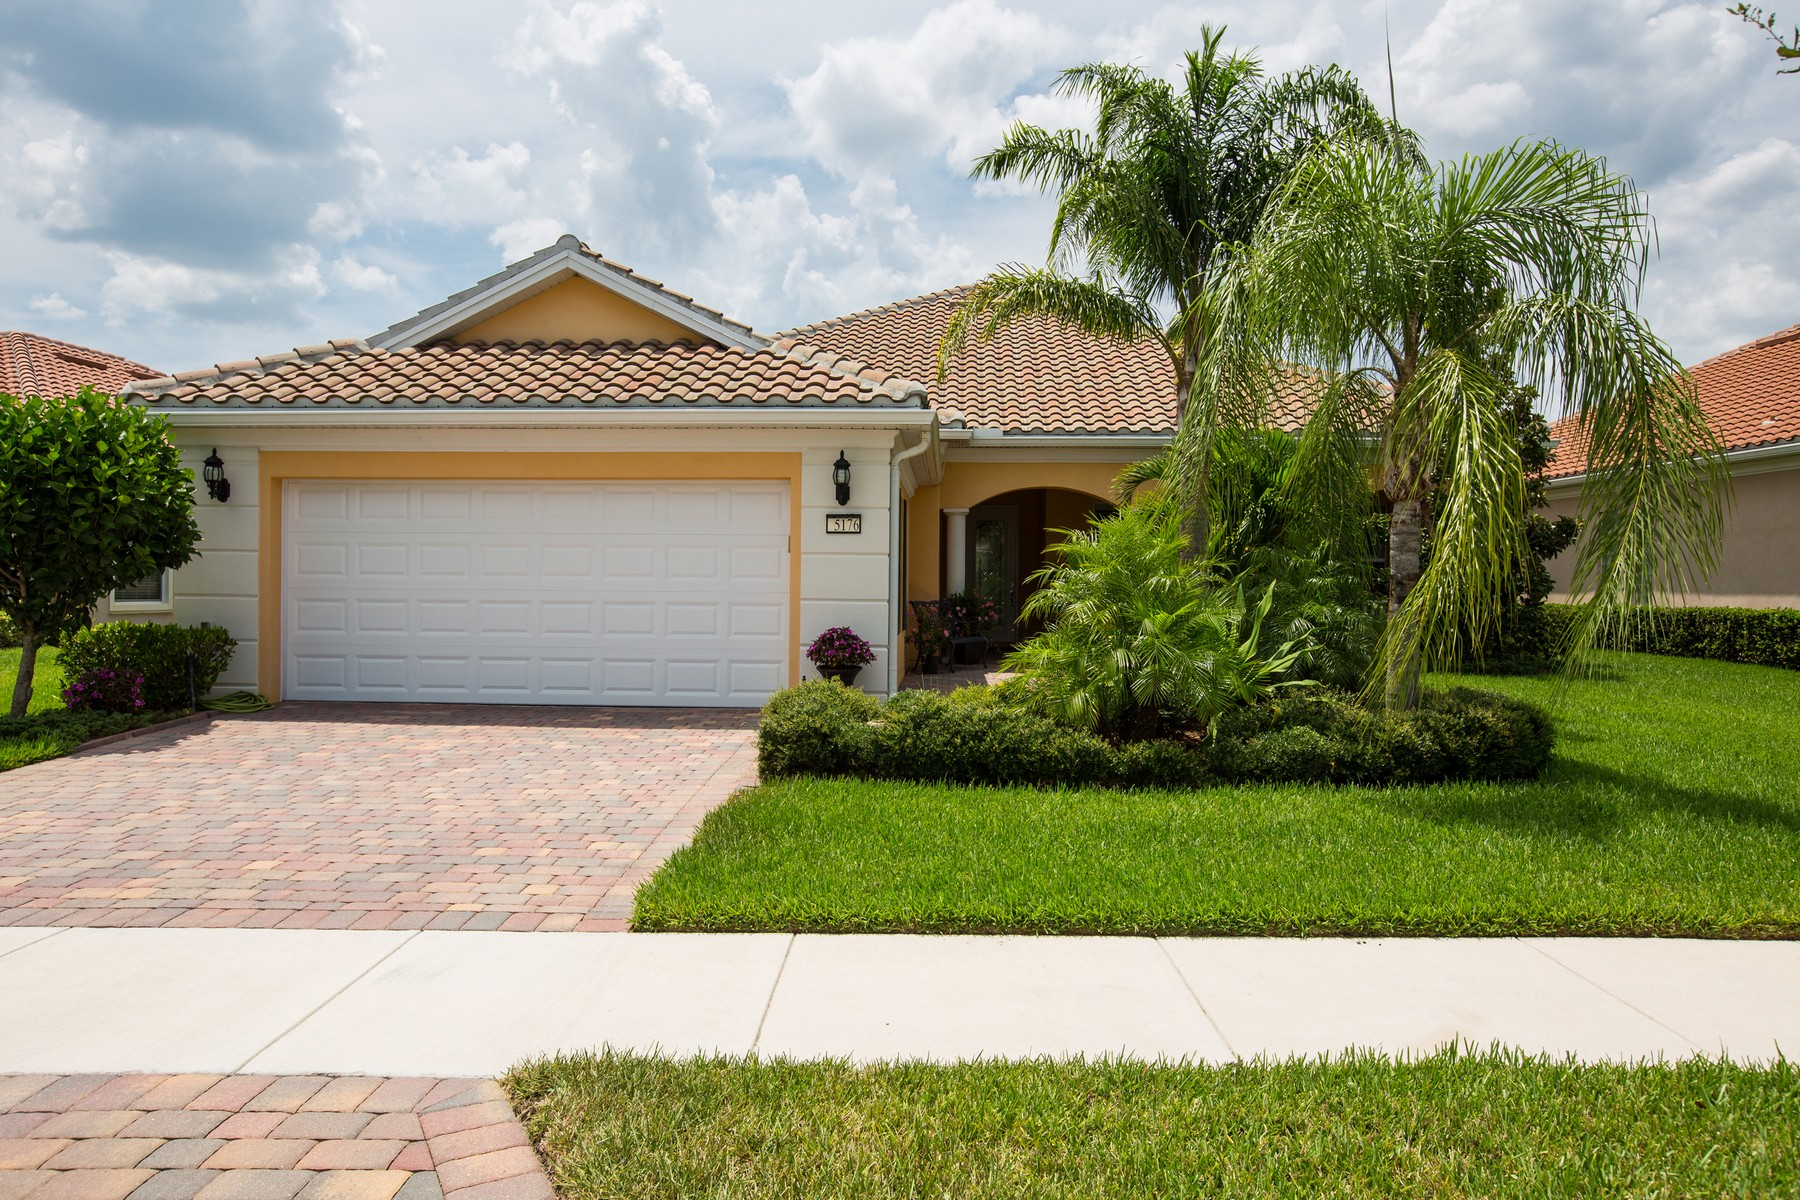 Property For Sale at Fabulous 4/4 in Isles of Waterway Village